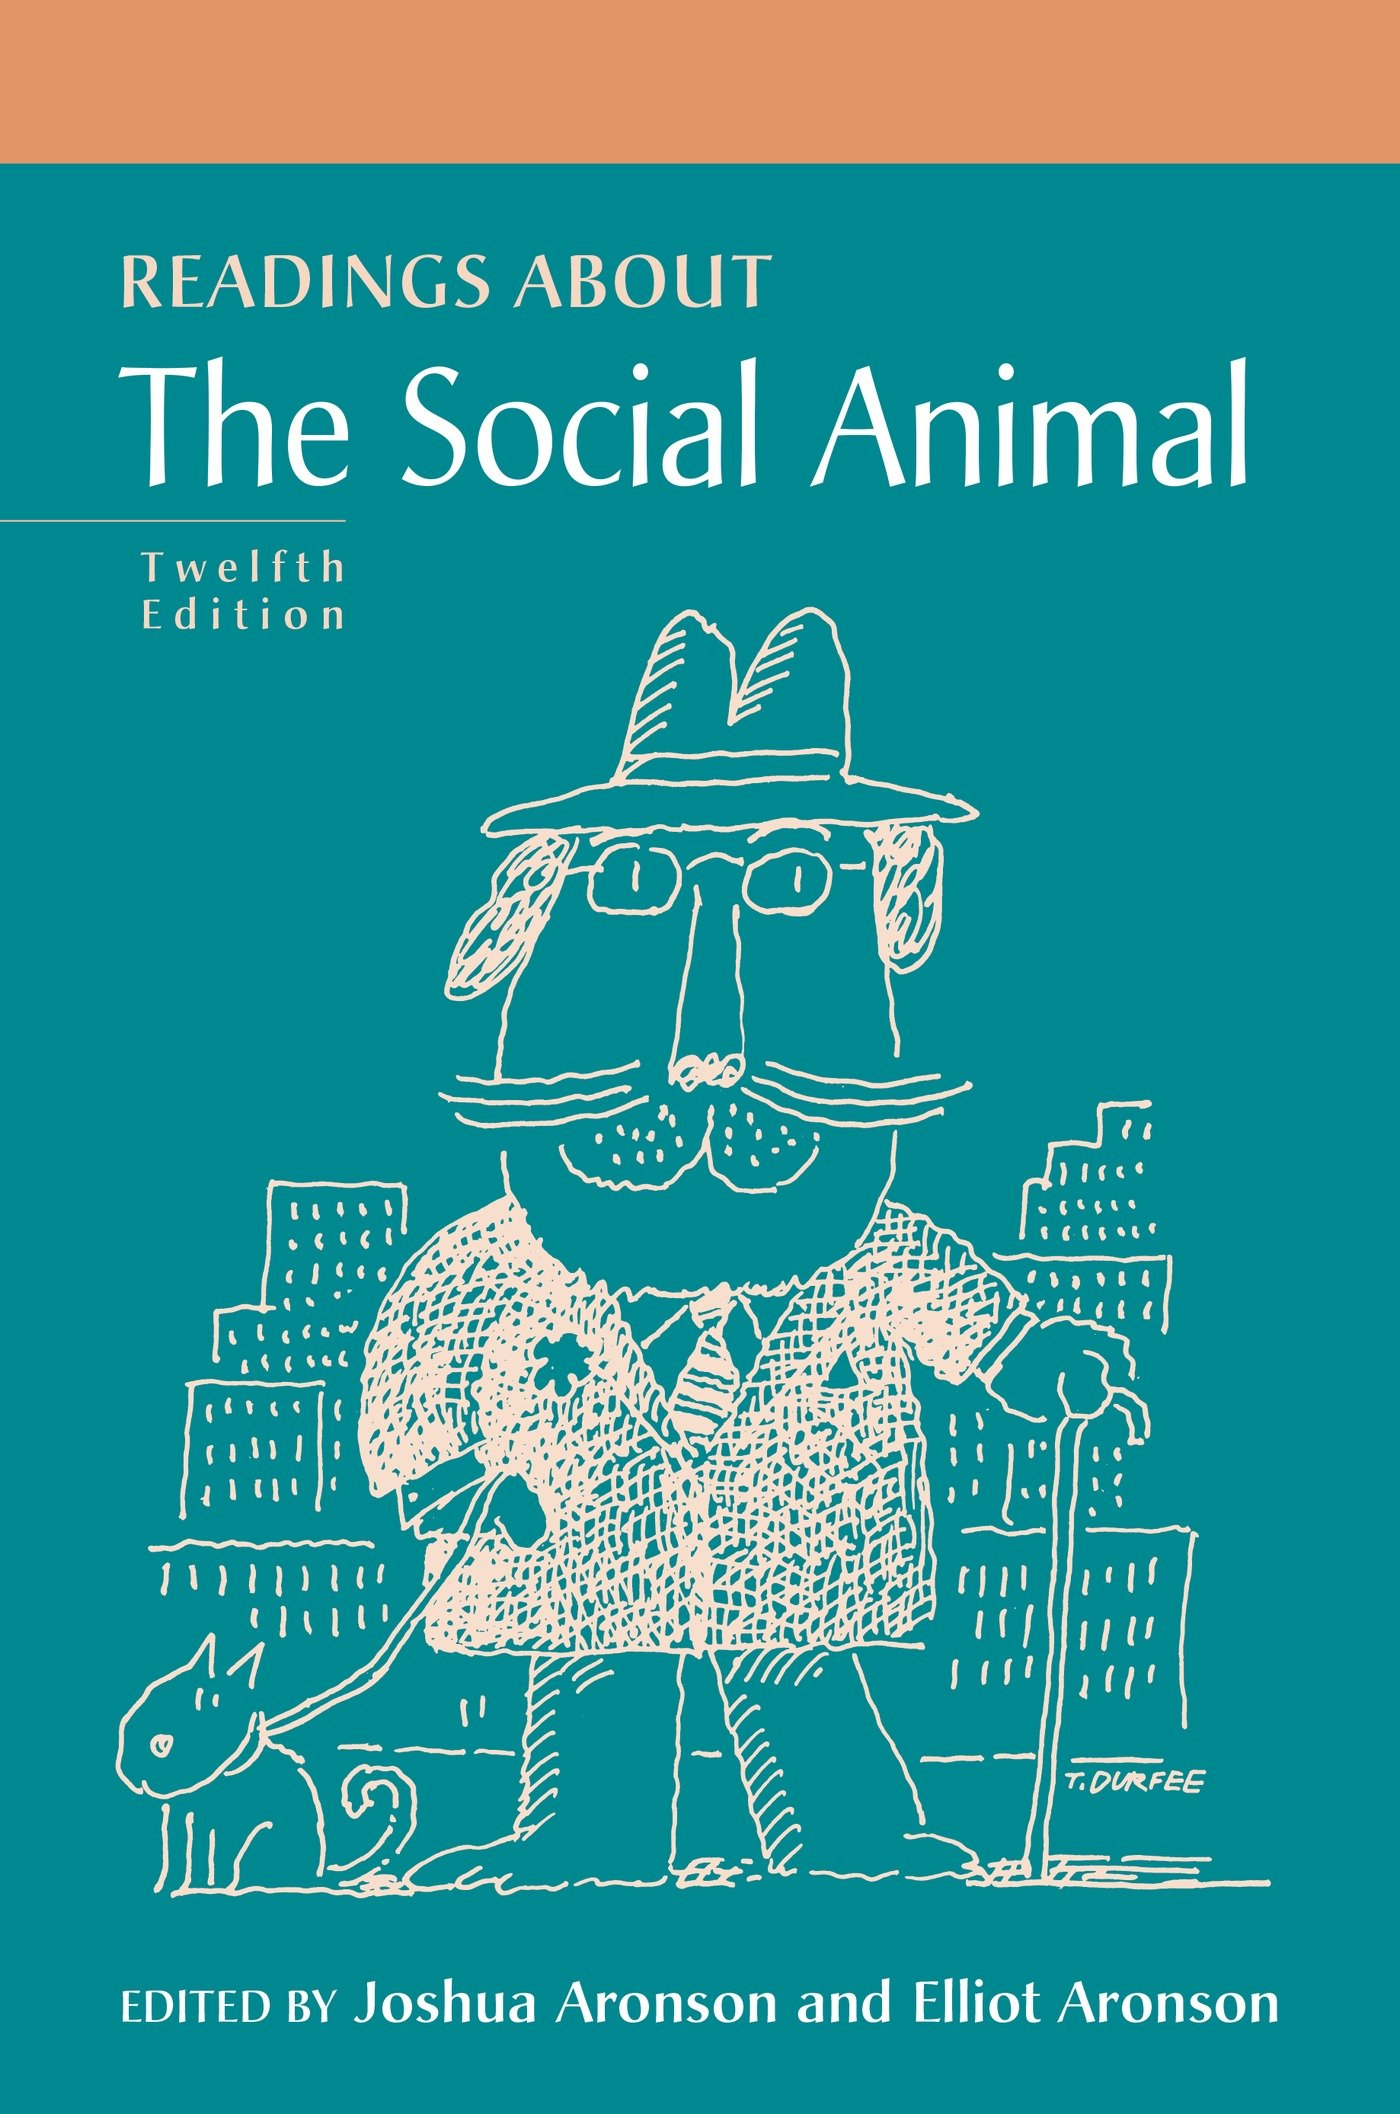 Buy Readings About the Social Animal Book Online at Low Prices in India |  Readings About the Social Animal Reviews & Ratings - Amazon.in